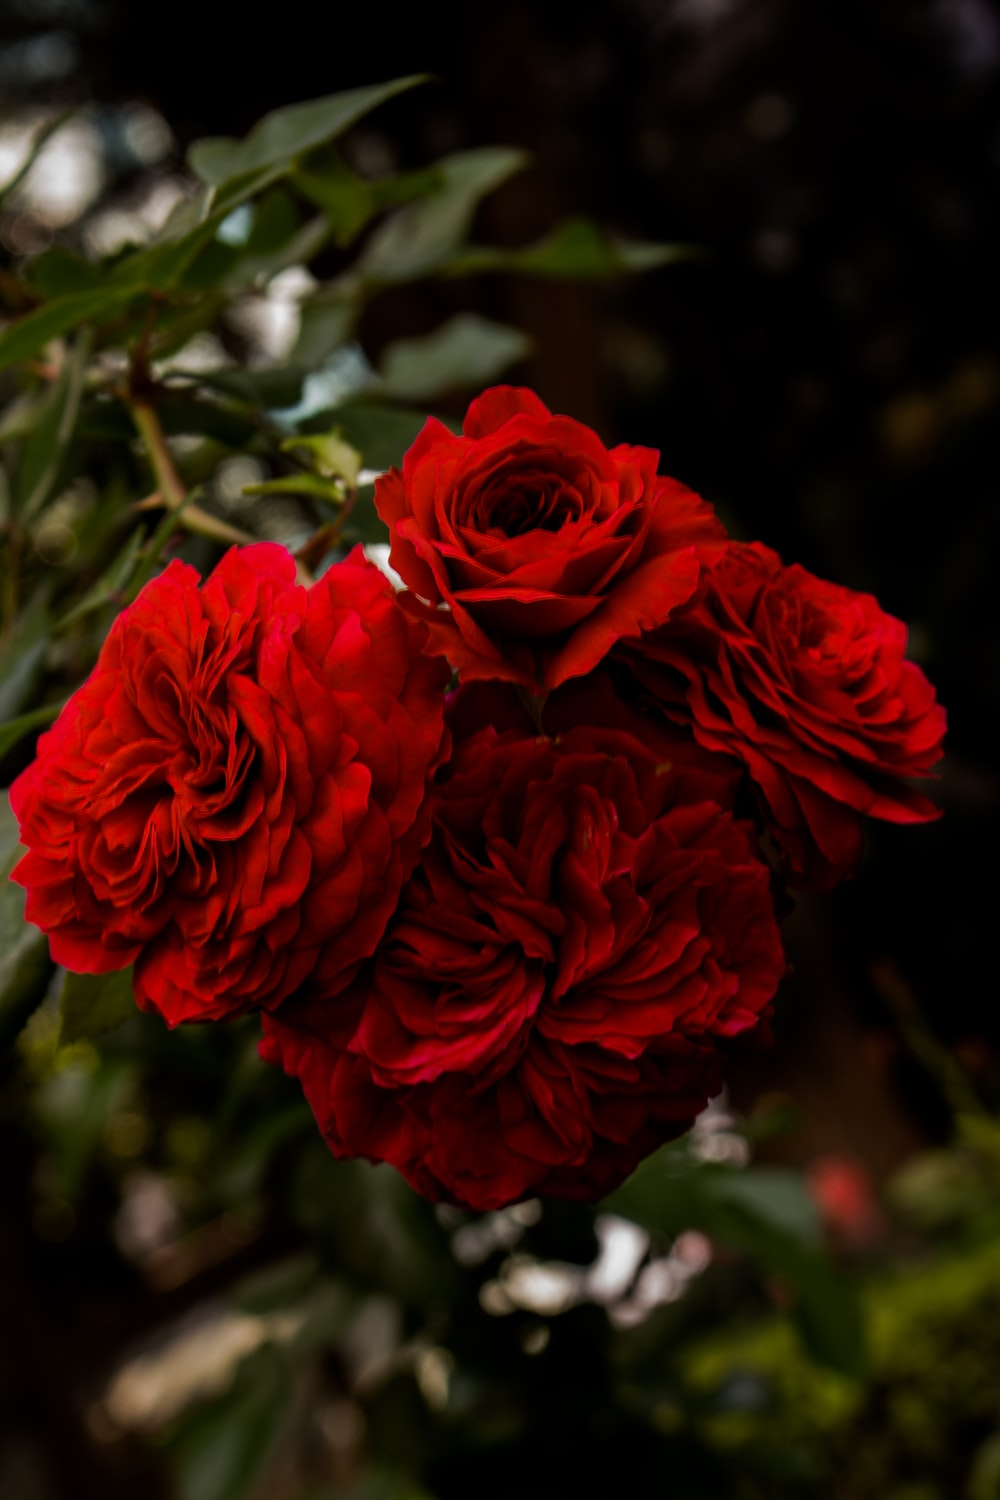 Red rose images hq download free pictures on unsplash red petaled flowers photography izmirmasajfo